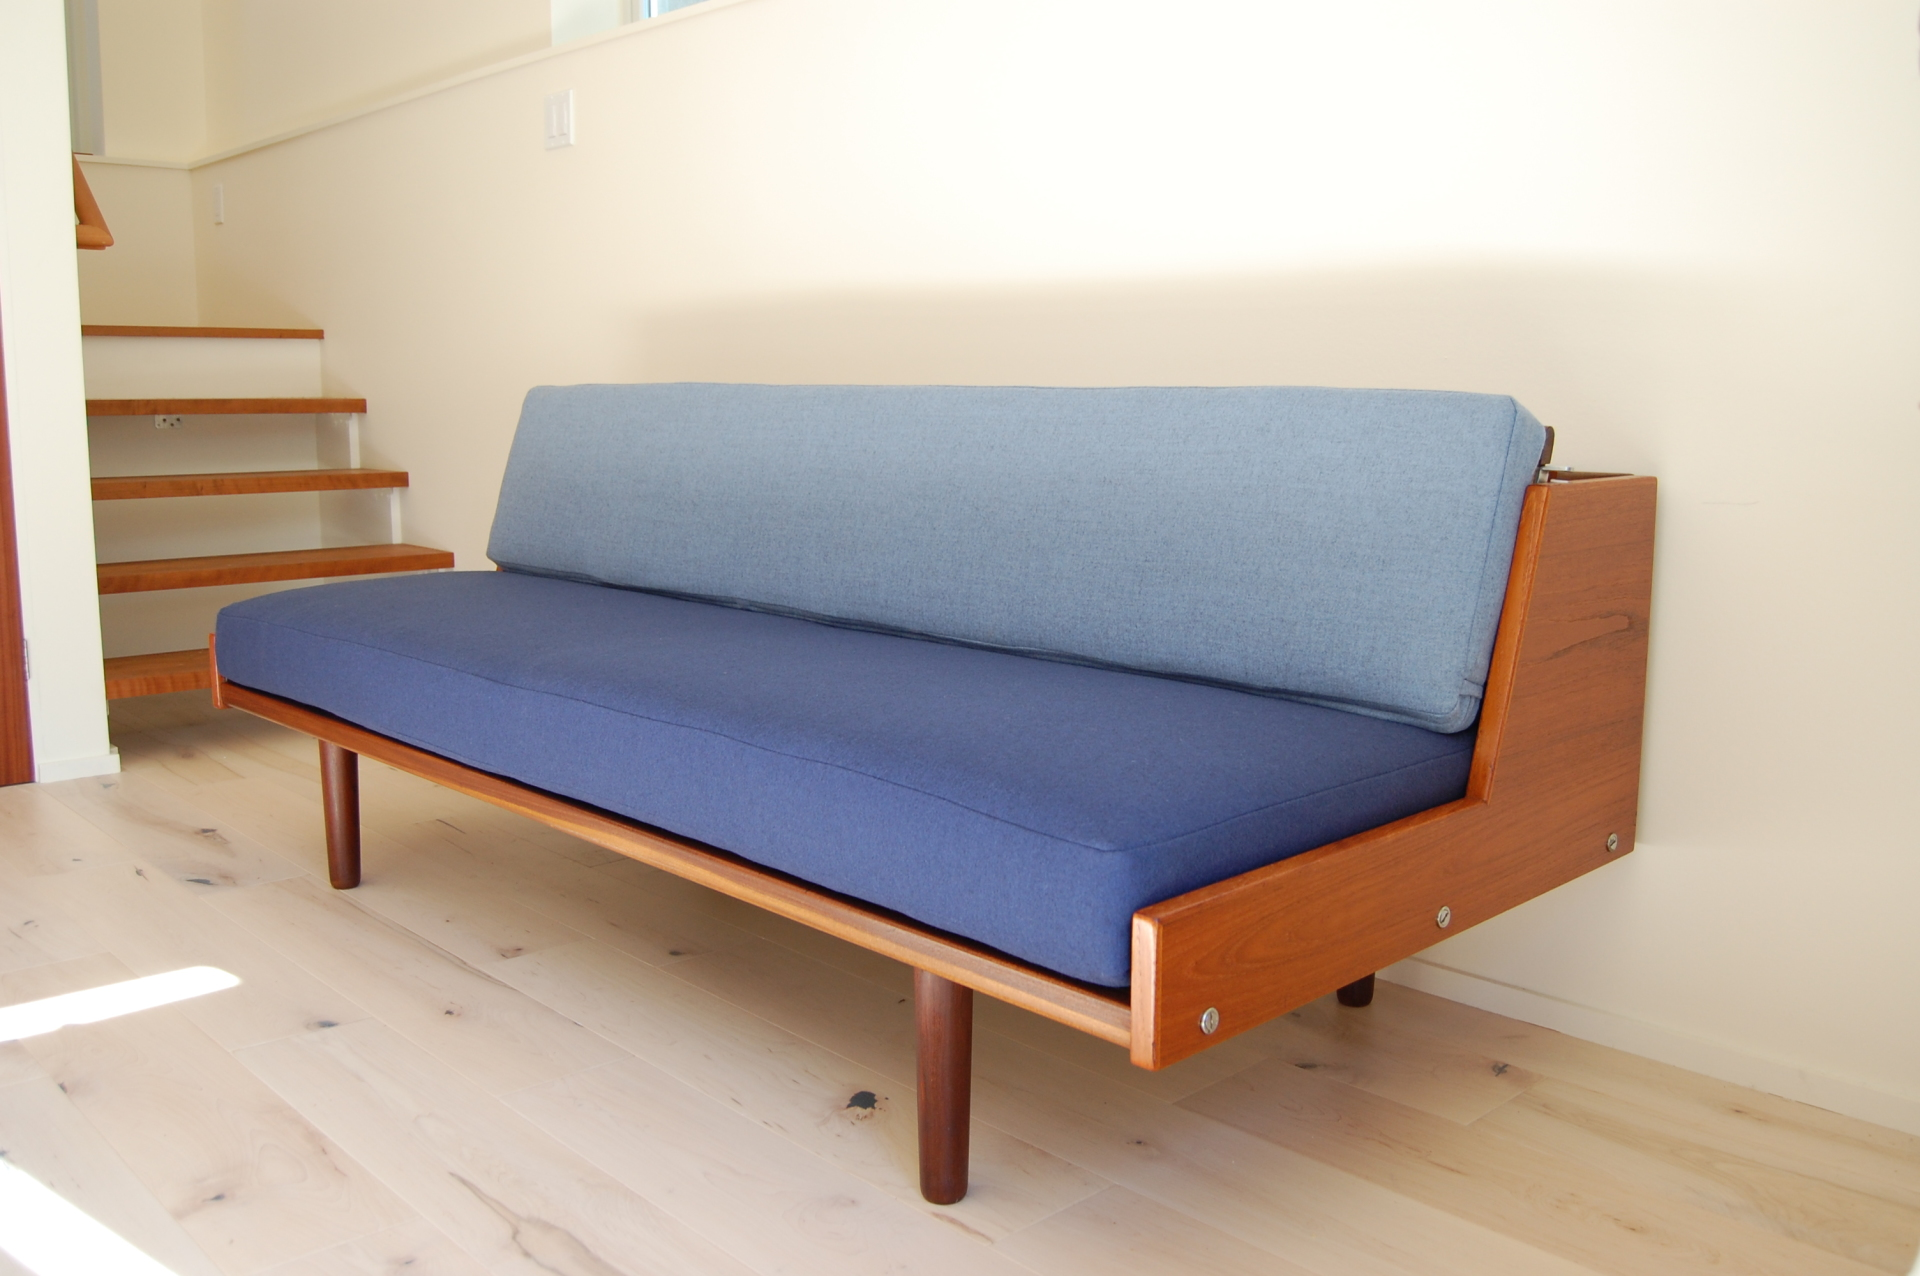 Hans J Wegner, Daybed, sofa, couch, multifunction, Getama, #9, Denmark, blue, Camira, wool fabric upholstery, solid, refinished, Danish modern, teak, Denmark, Scandinavian, Danish modern, modern, mcm, mod, Scandinavian, home decor, vintage, Seattle, midcentury55, furniture,